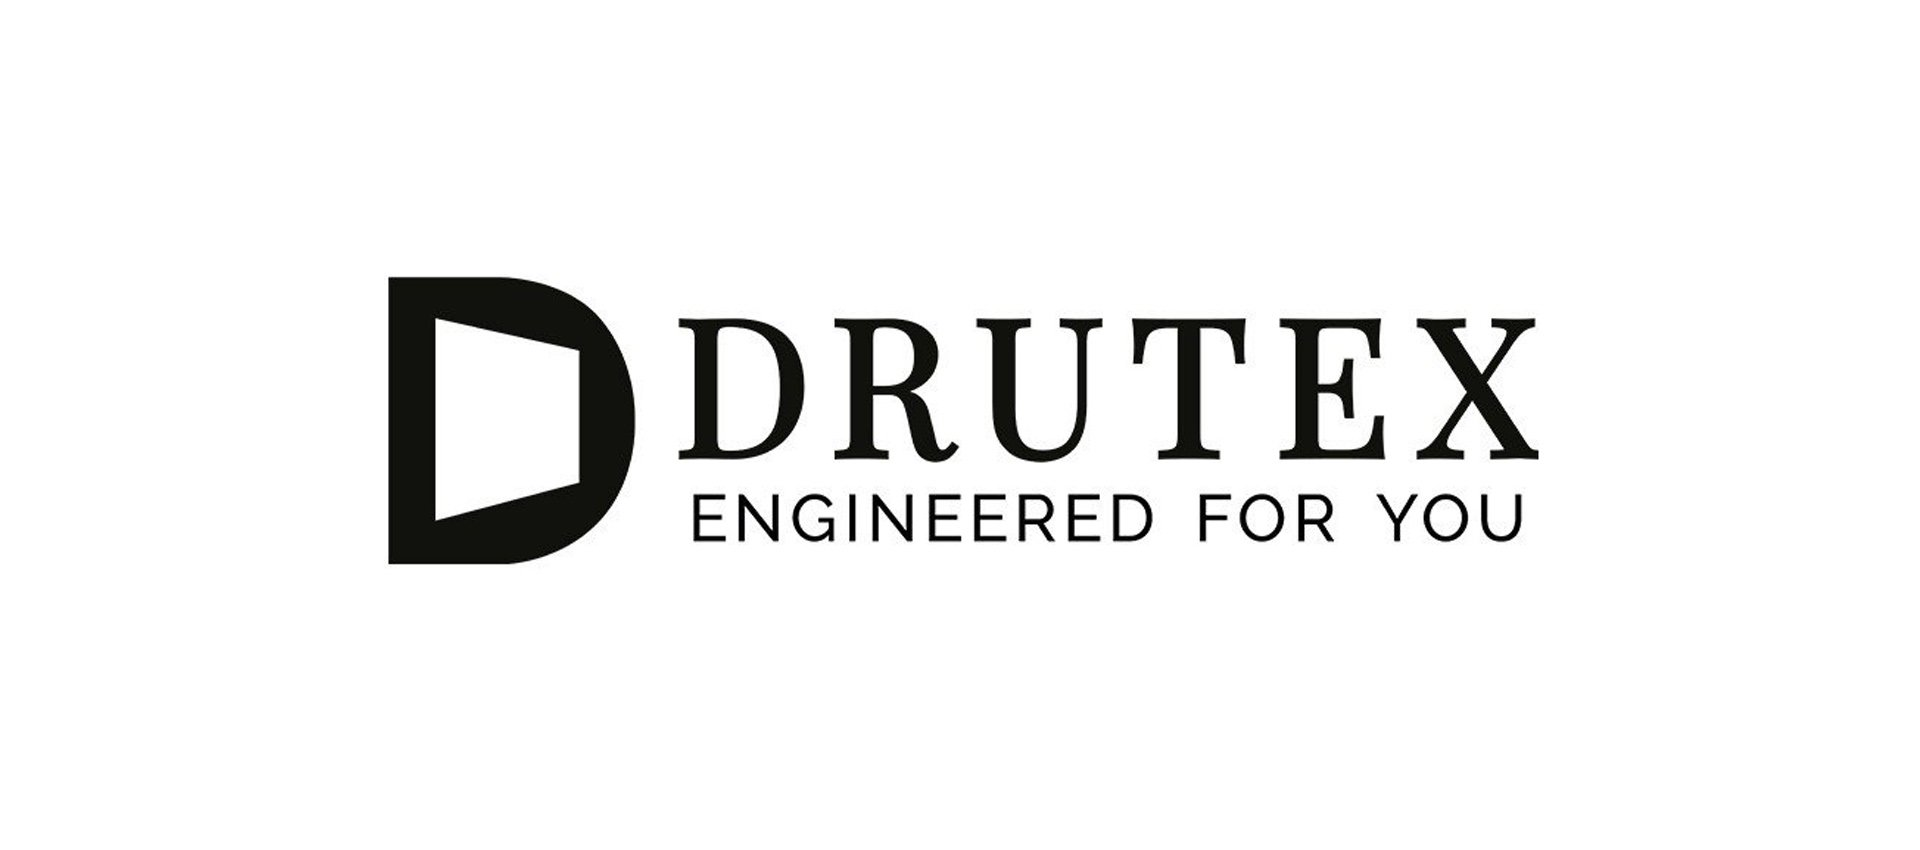 DRUTEX closes this year participation in international fair trades with flying colors.